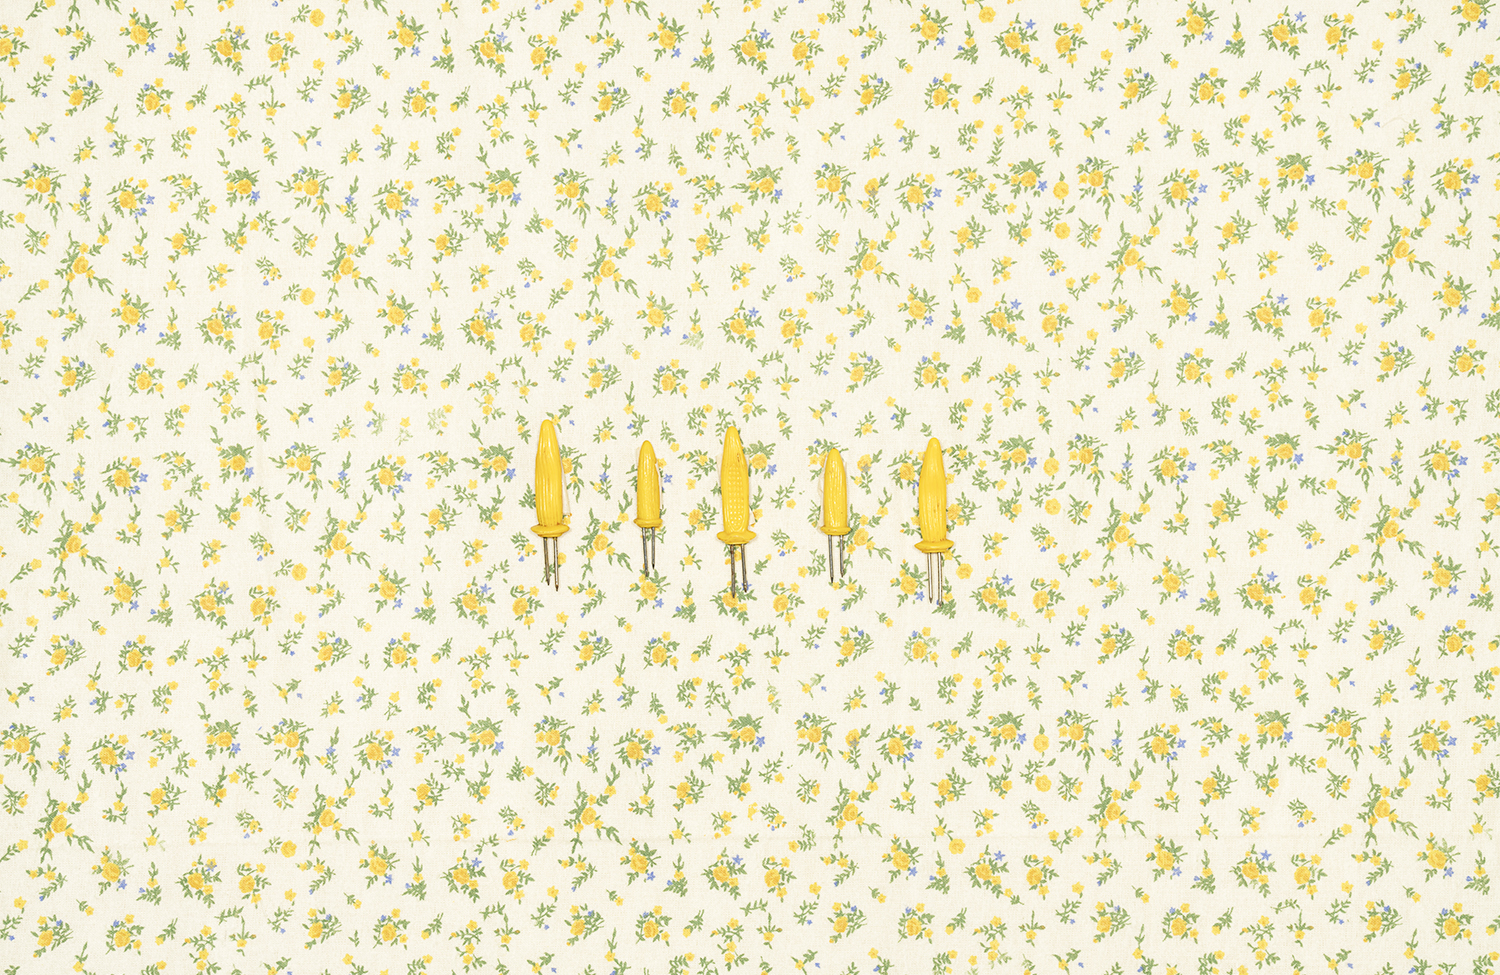 Corn Cob Holders on Tablecloth with Yellow Flowers